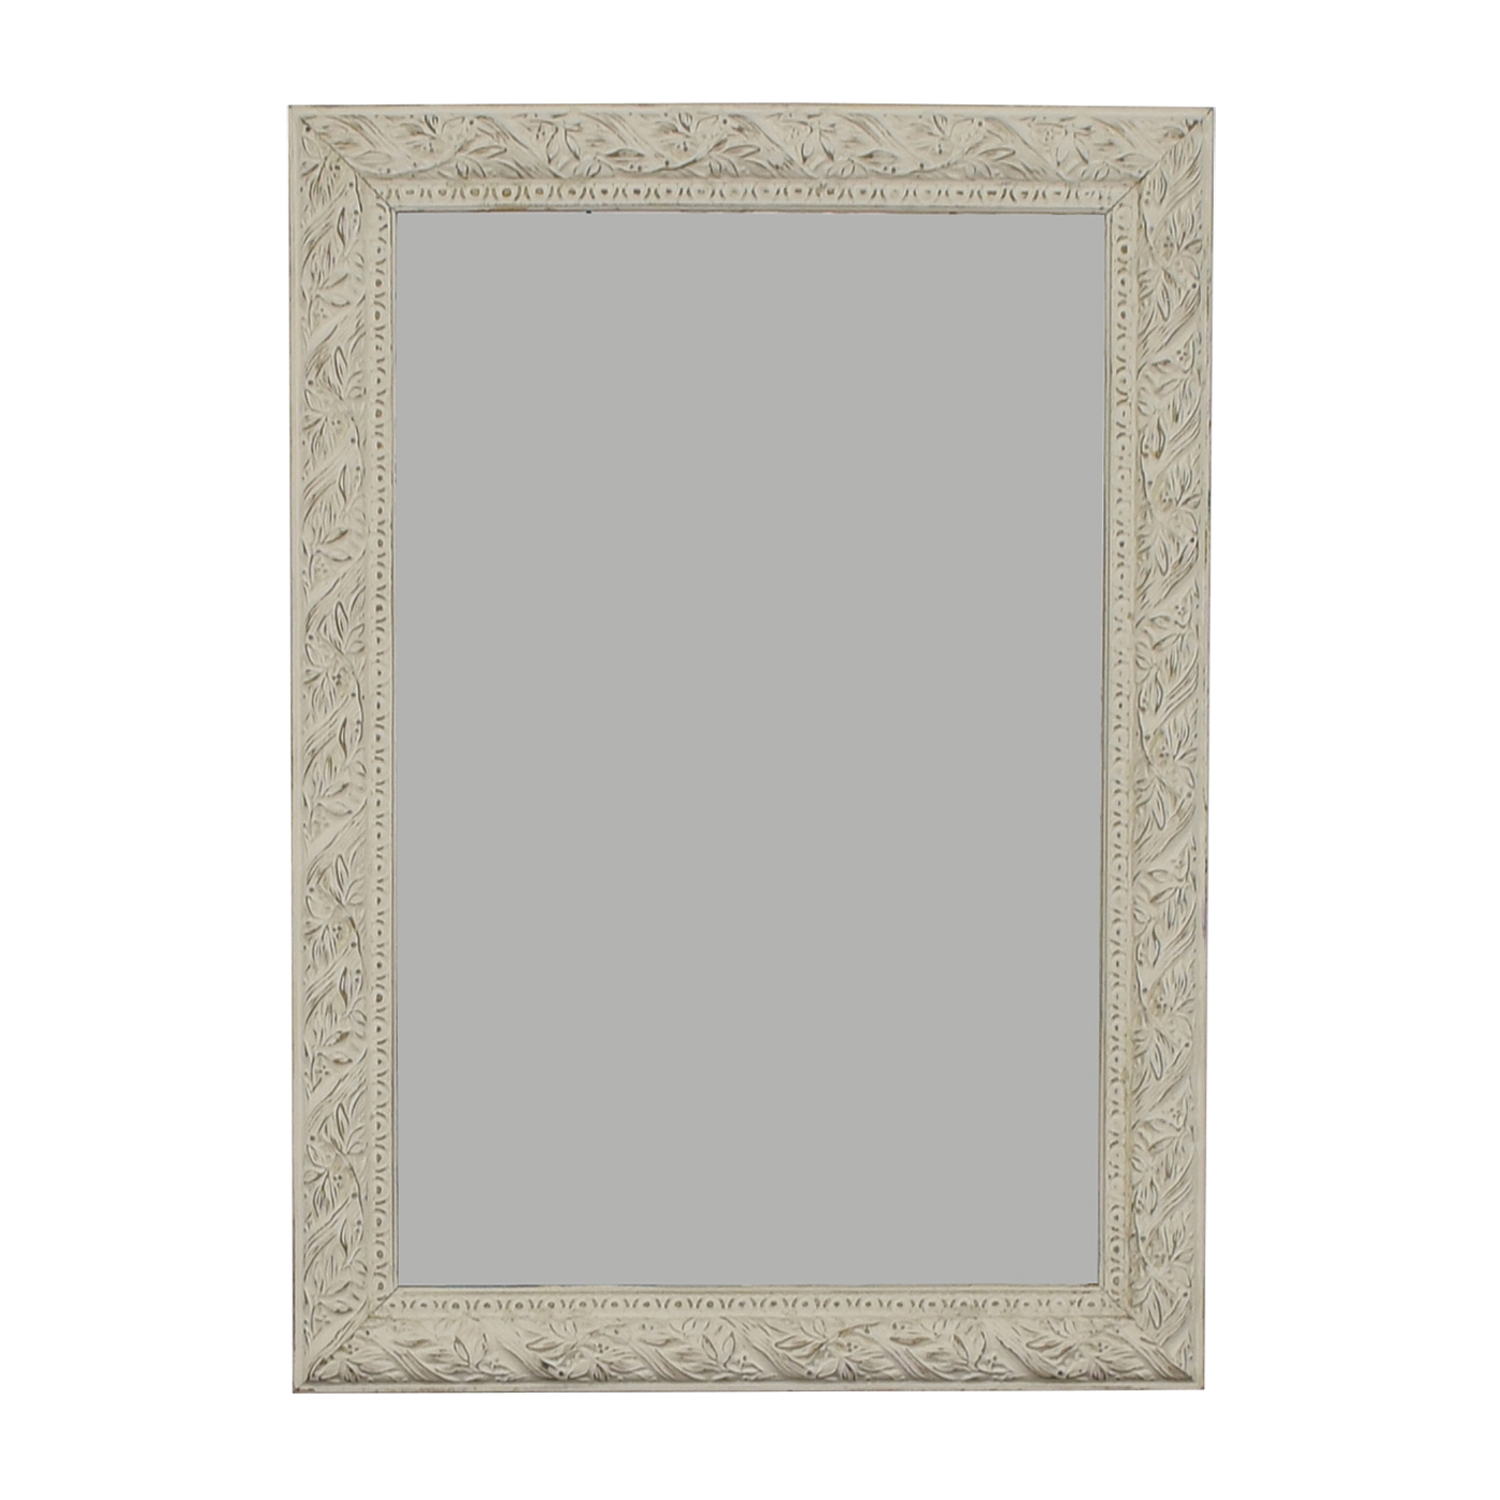 Distressed White Antique Shabby Chic Mirror on sale